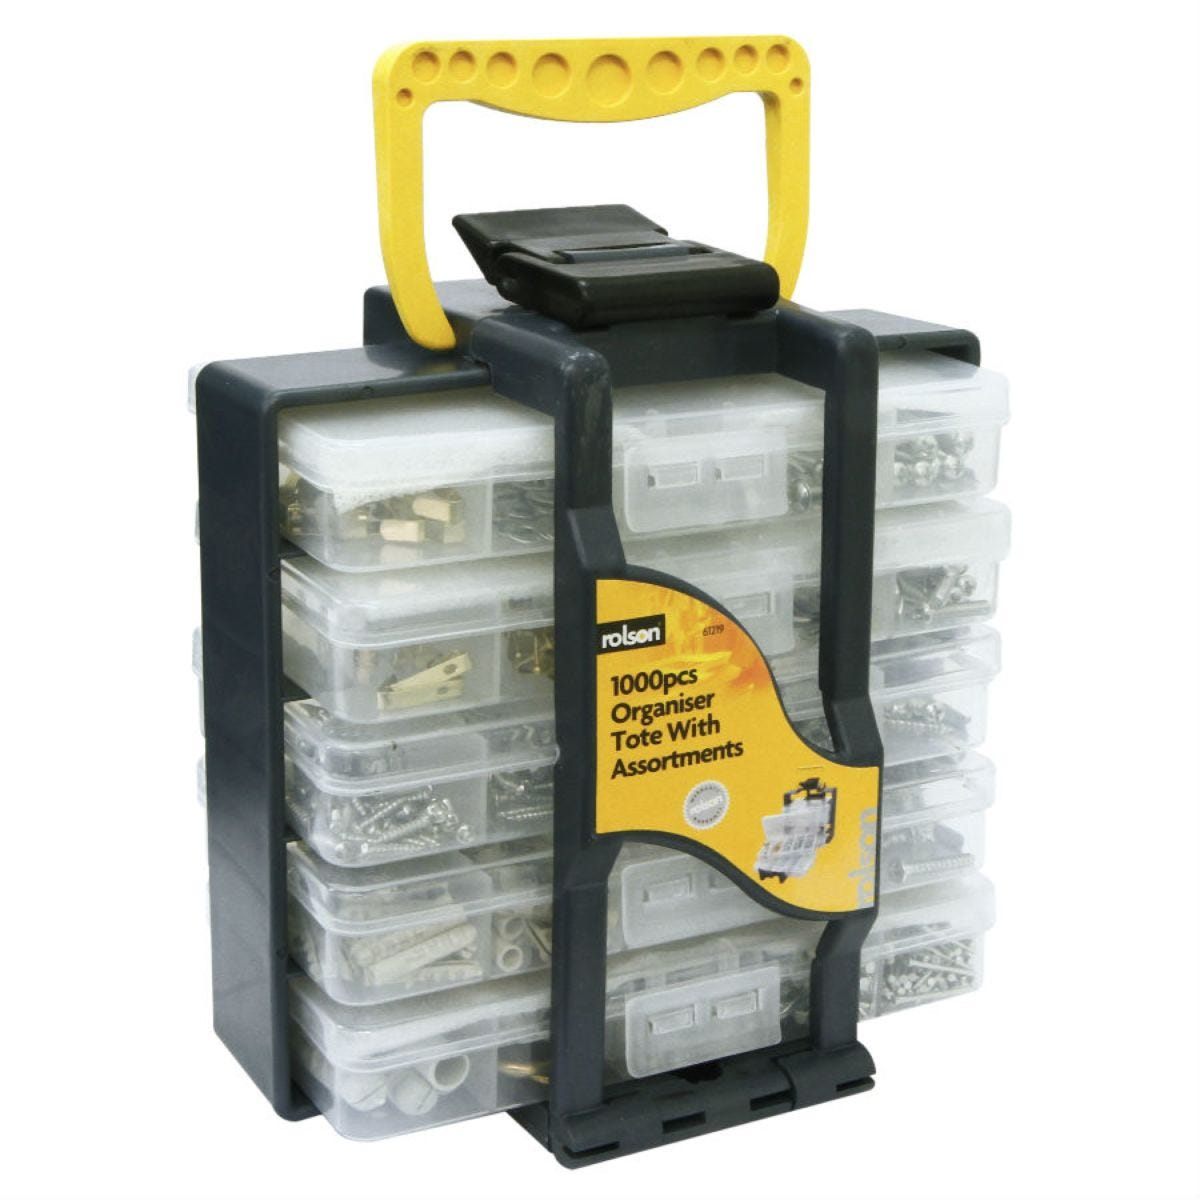 Rolson 1000-Piece Nuts and Bolts Selection in Storage Tote Box